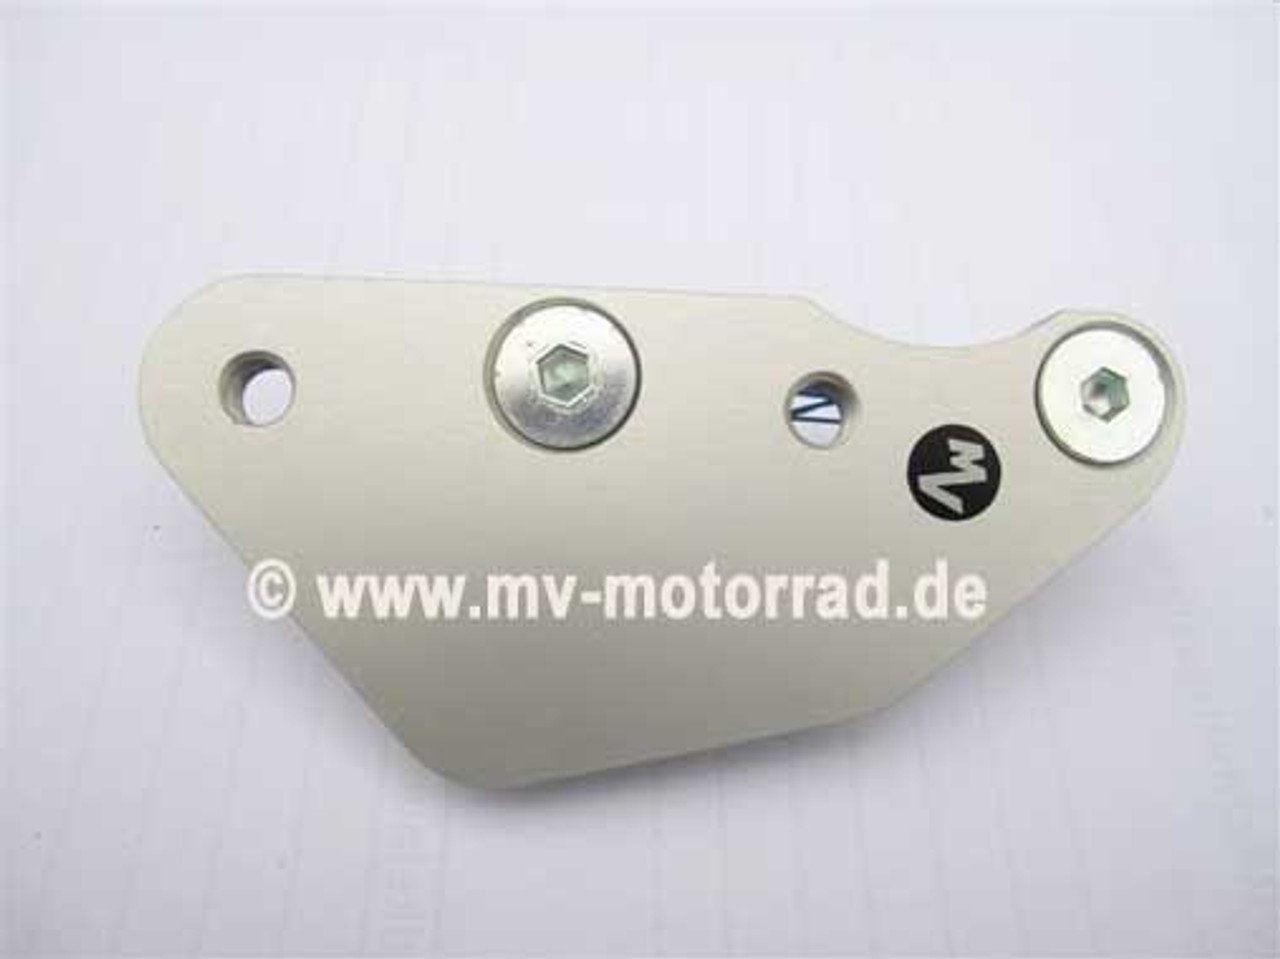 Driver Footpeg lowering kit Adjustable 40mm move for BMW R1200ST